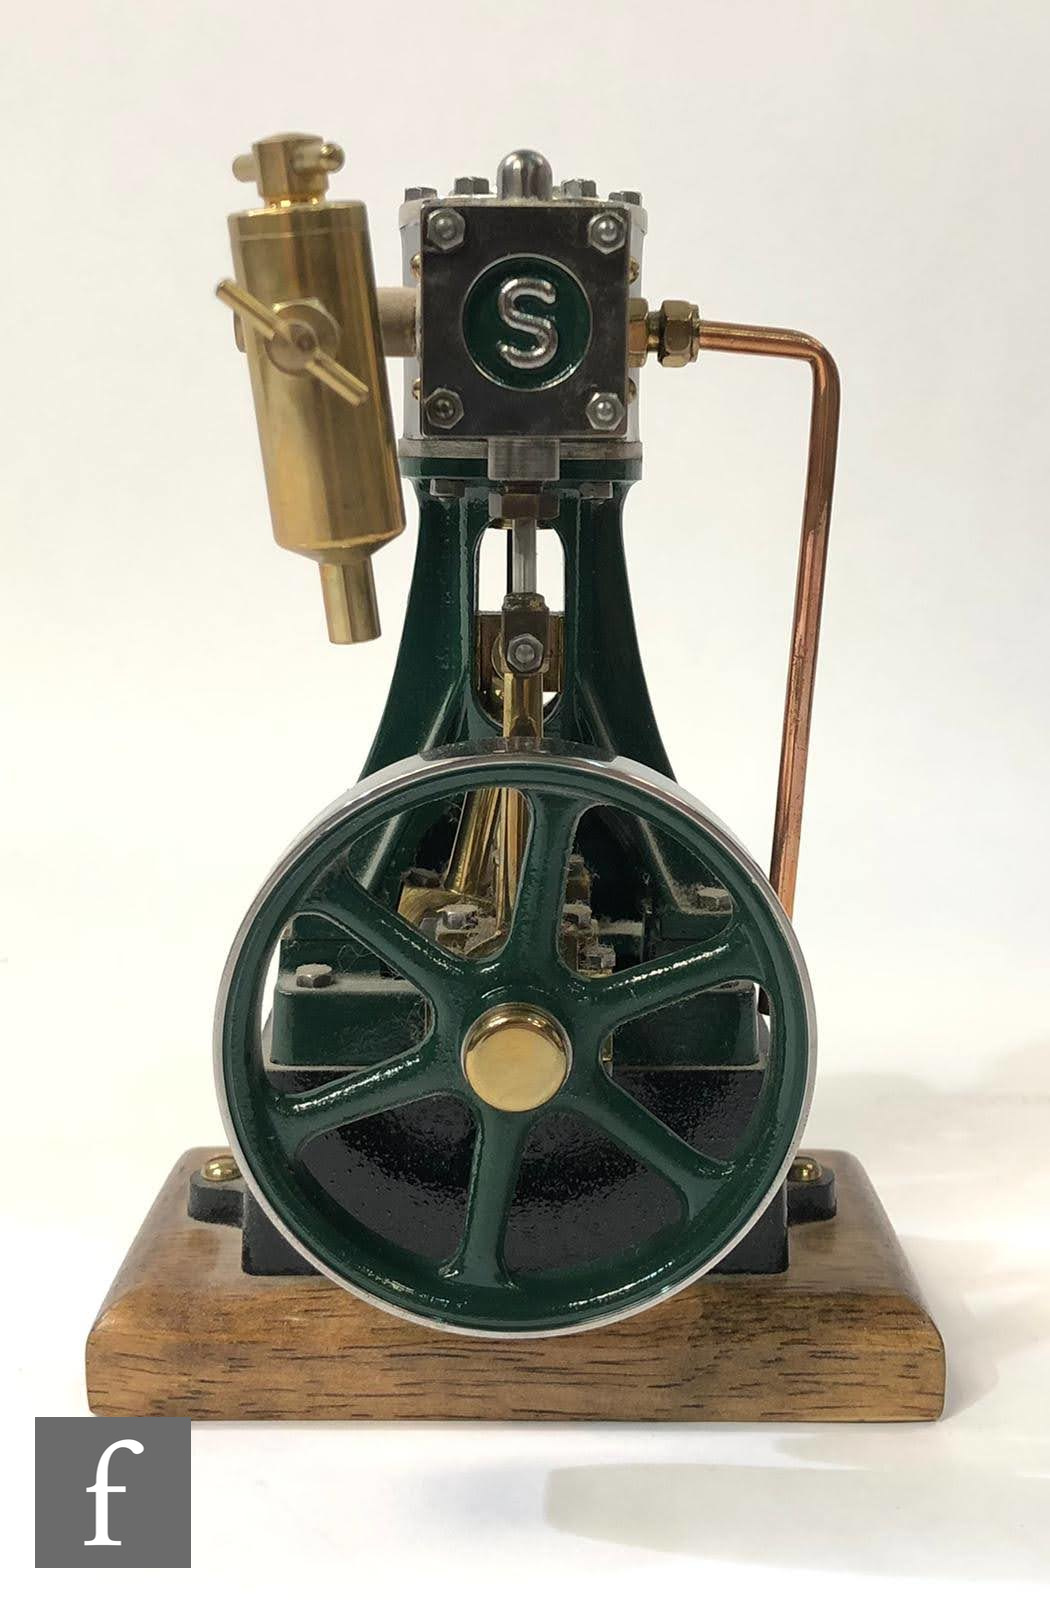 A Stuart single cylinder vertical live steam engine, painted green, with a six spoked flywheel,